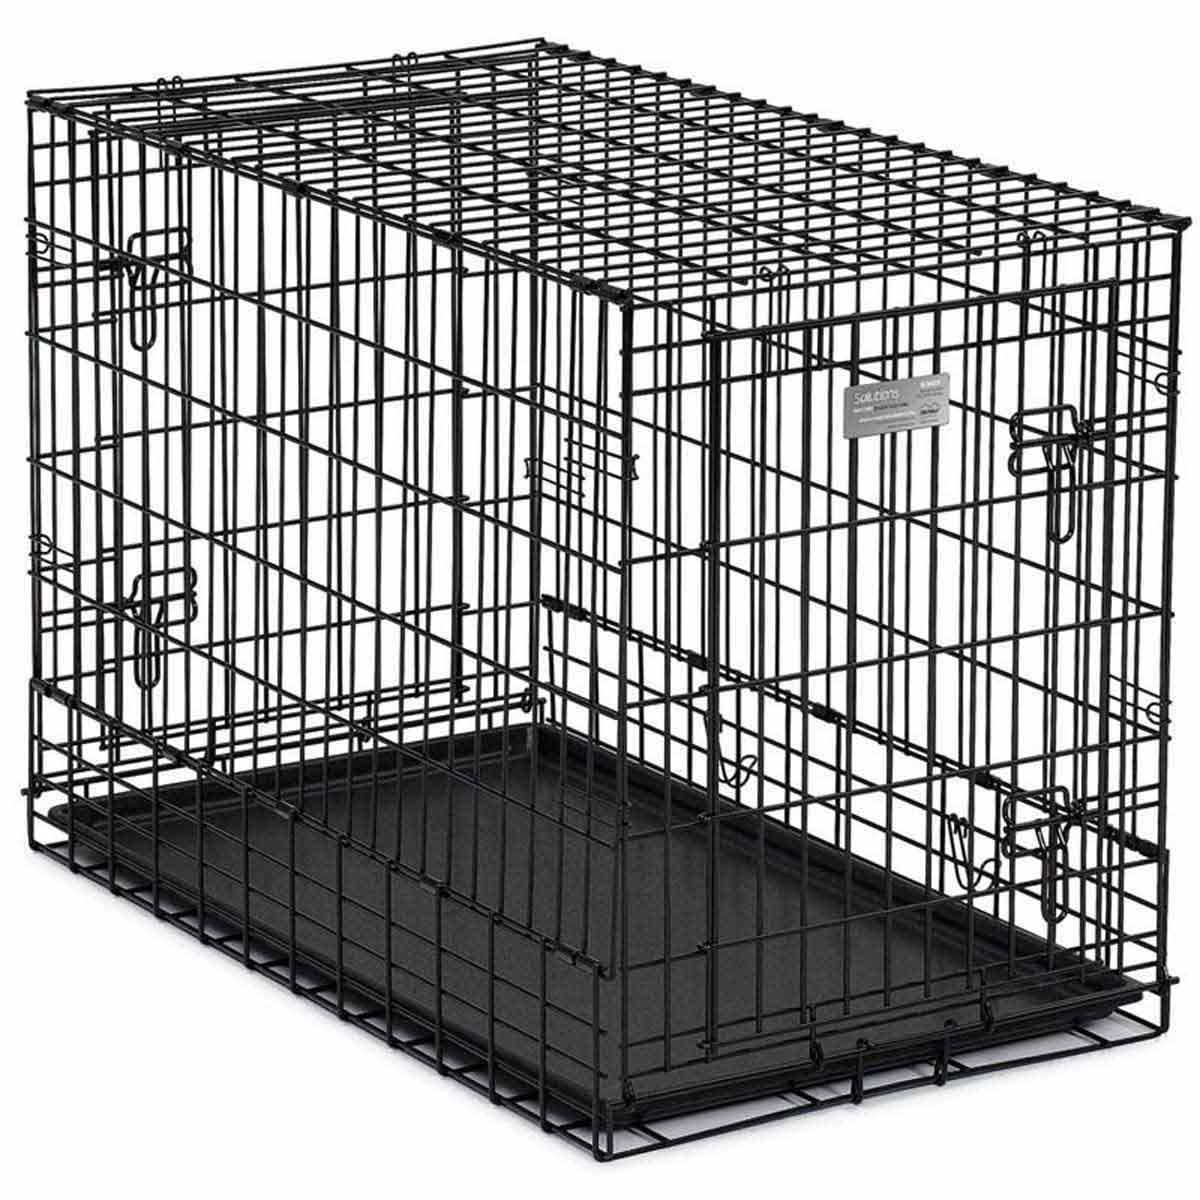 Midwest Solutions SUV Double Door Crate for Dogs - 36 by 21 by 26 inches